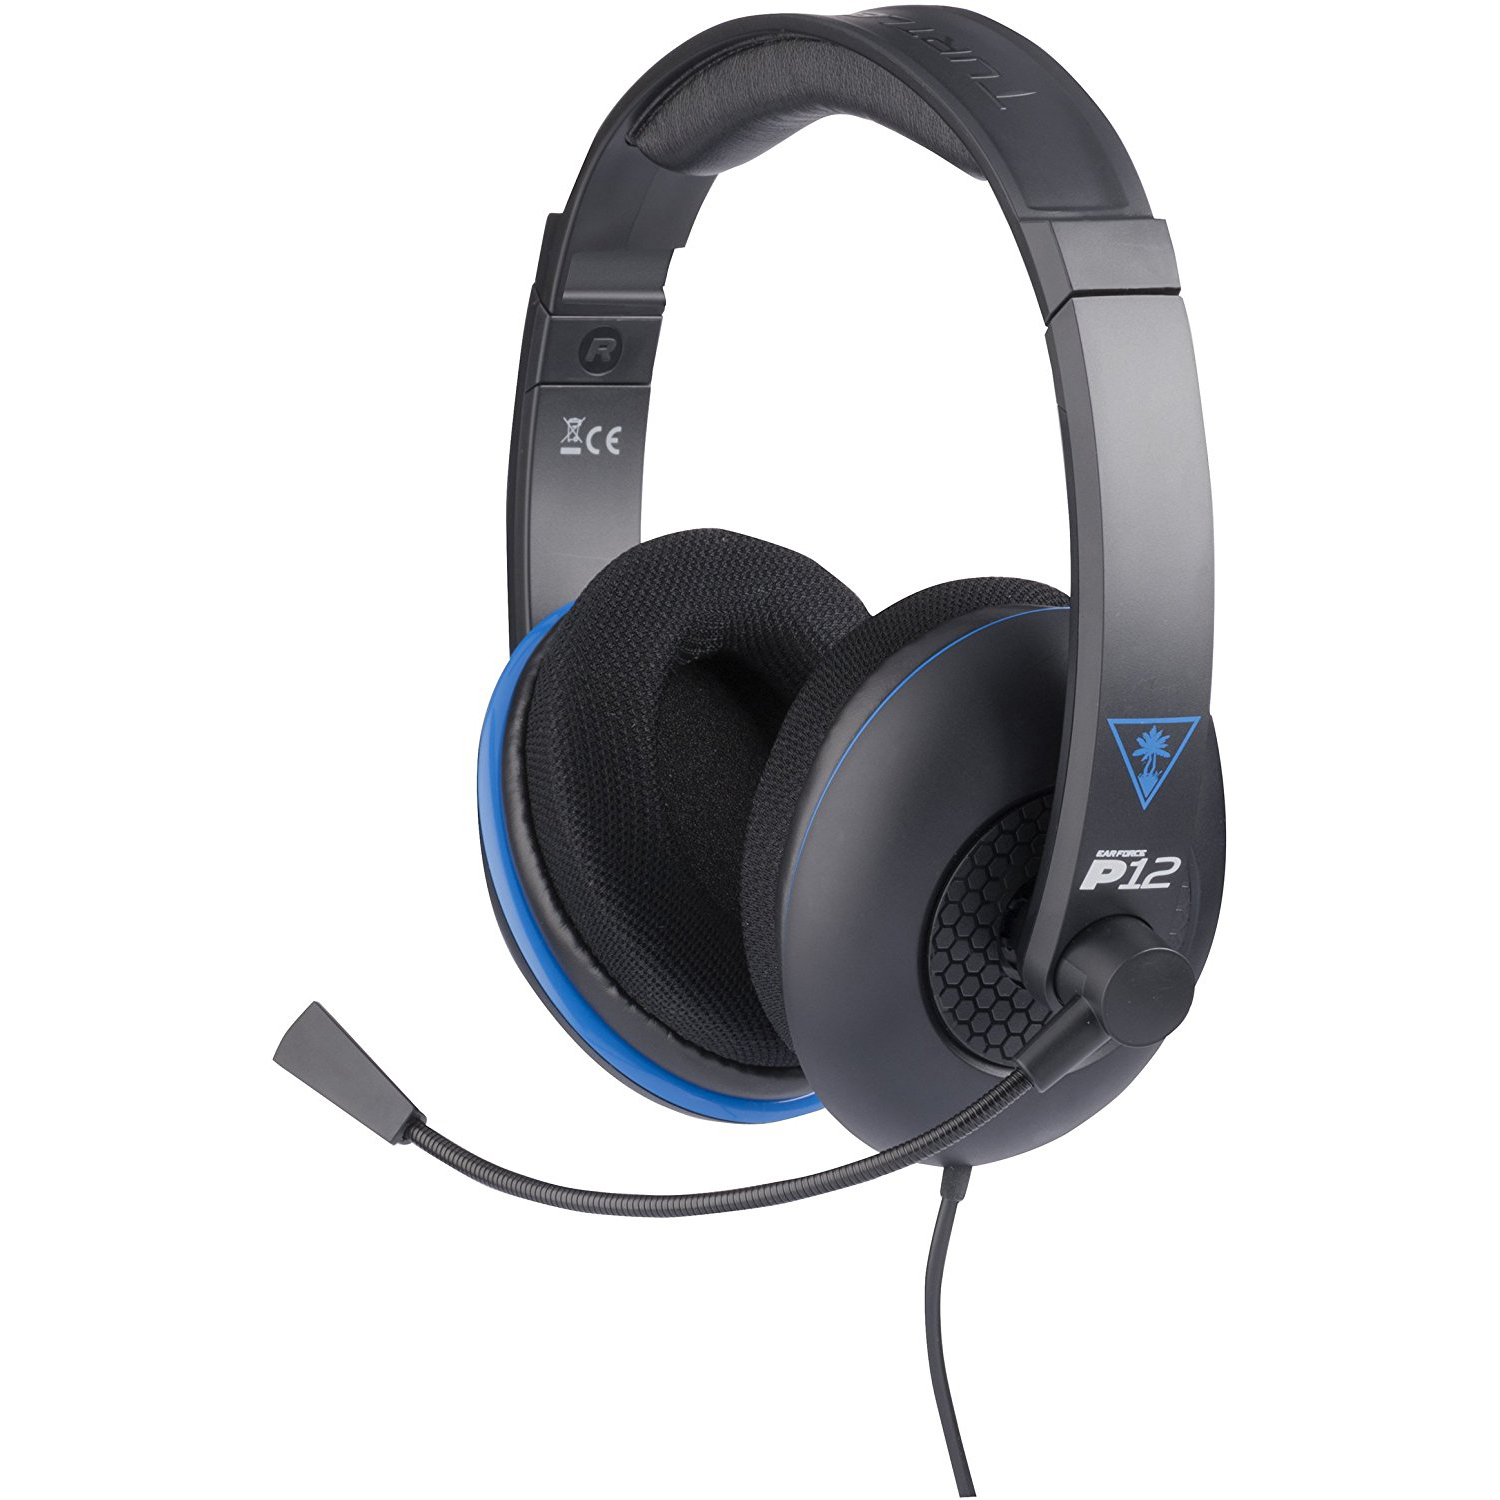 P Turtle Beach Turtle Beach 60P vs Tu...